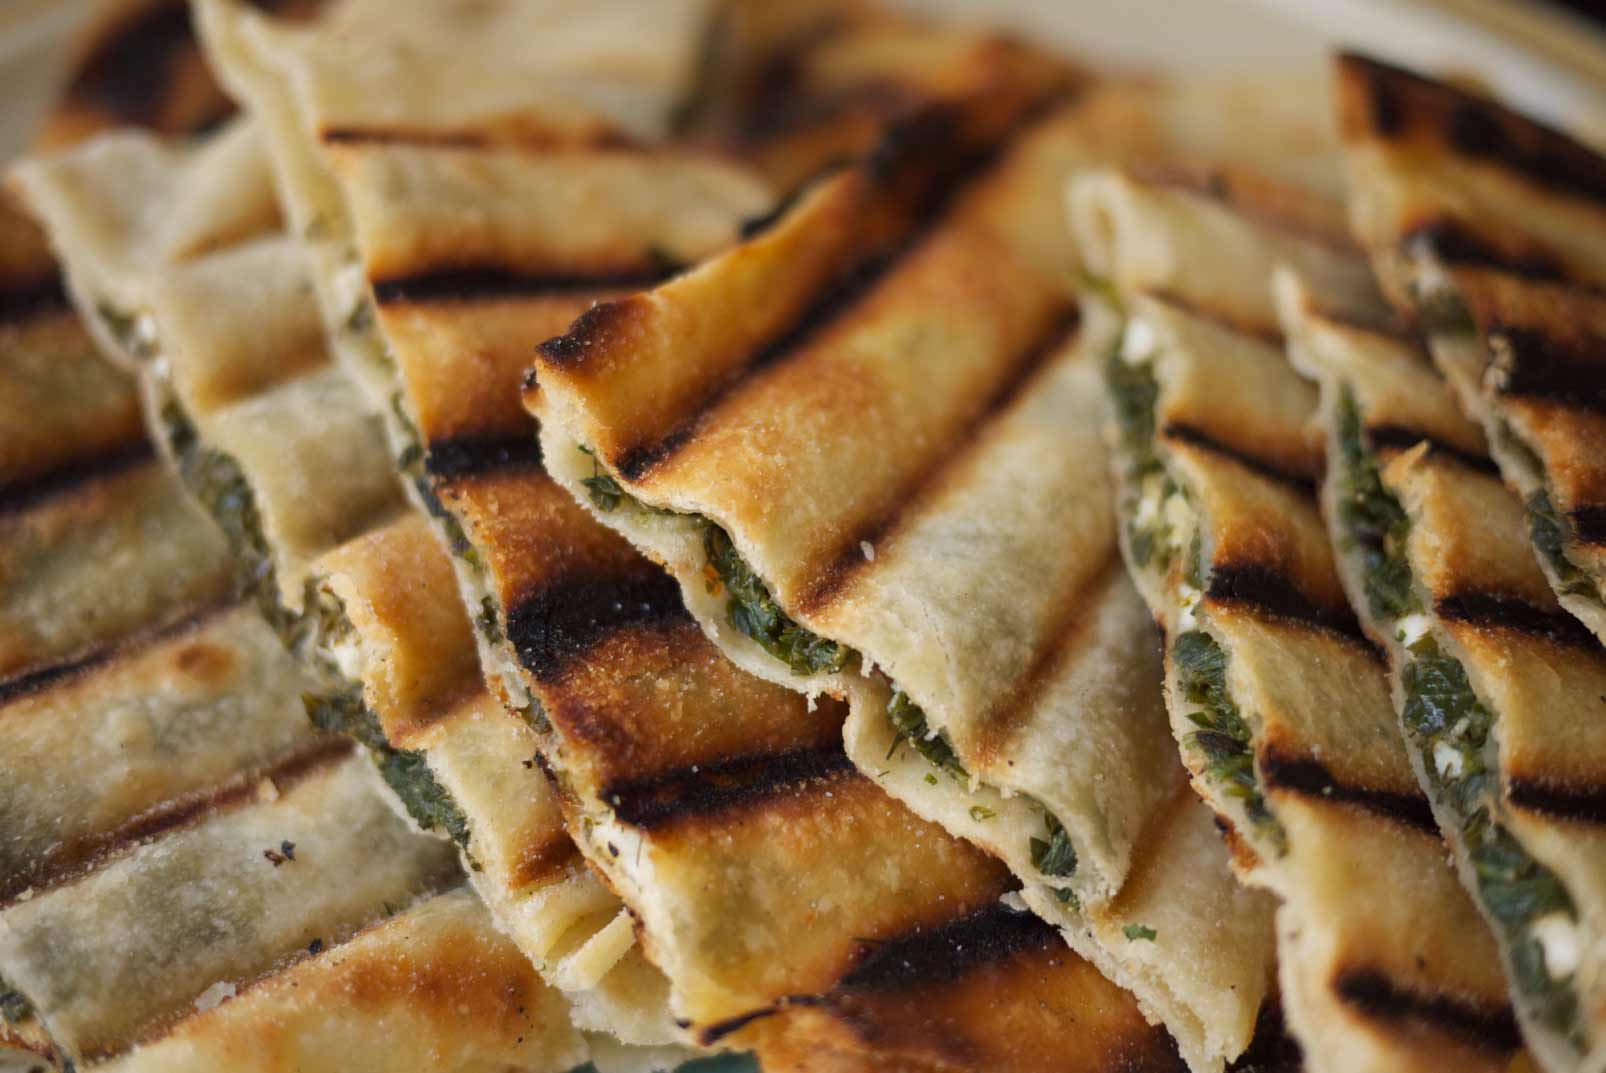 Greek Skillet Pies with Mustard Greens, Feta, and Herbs